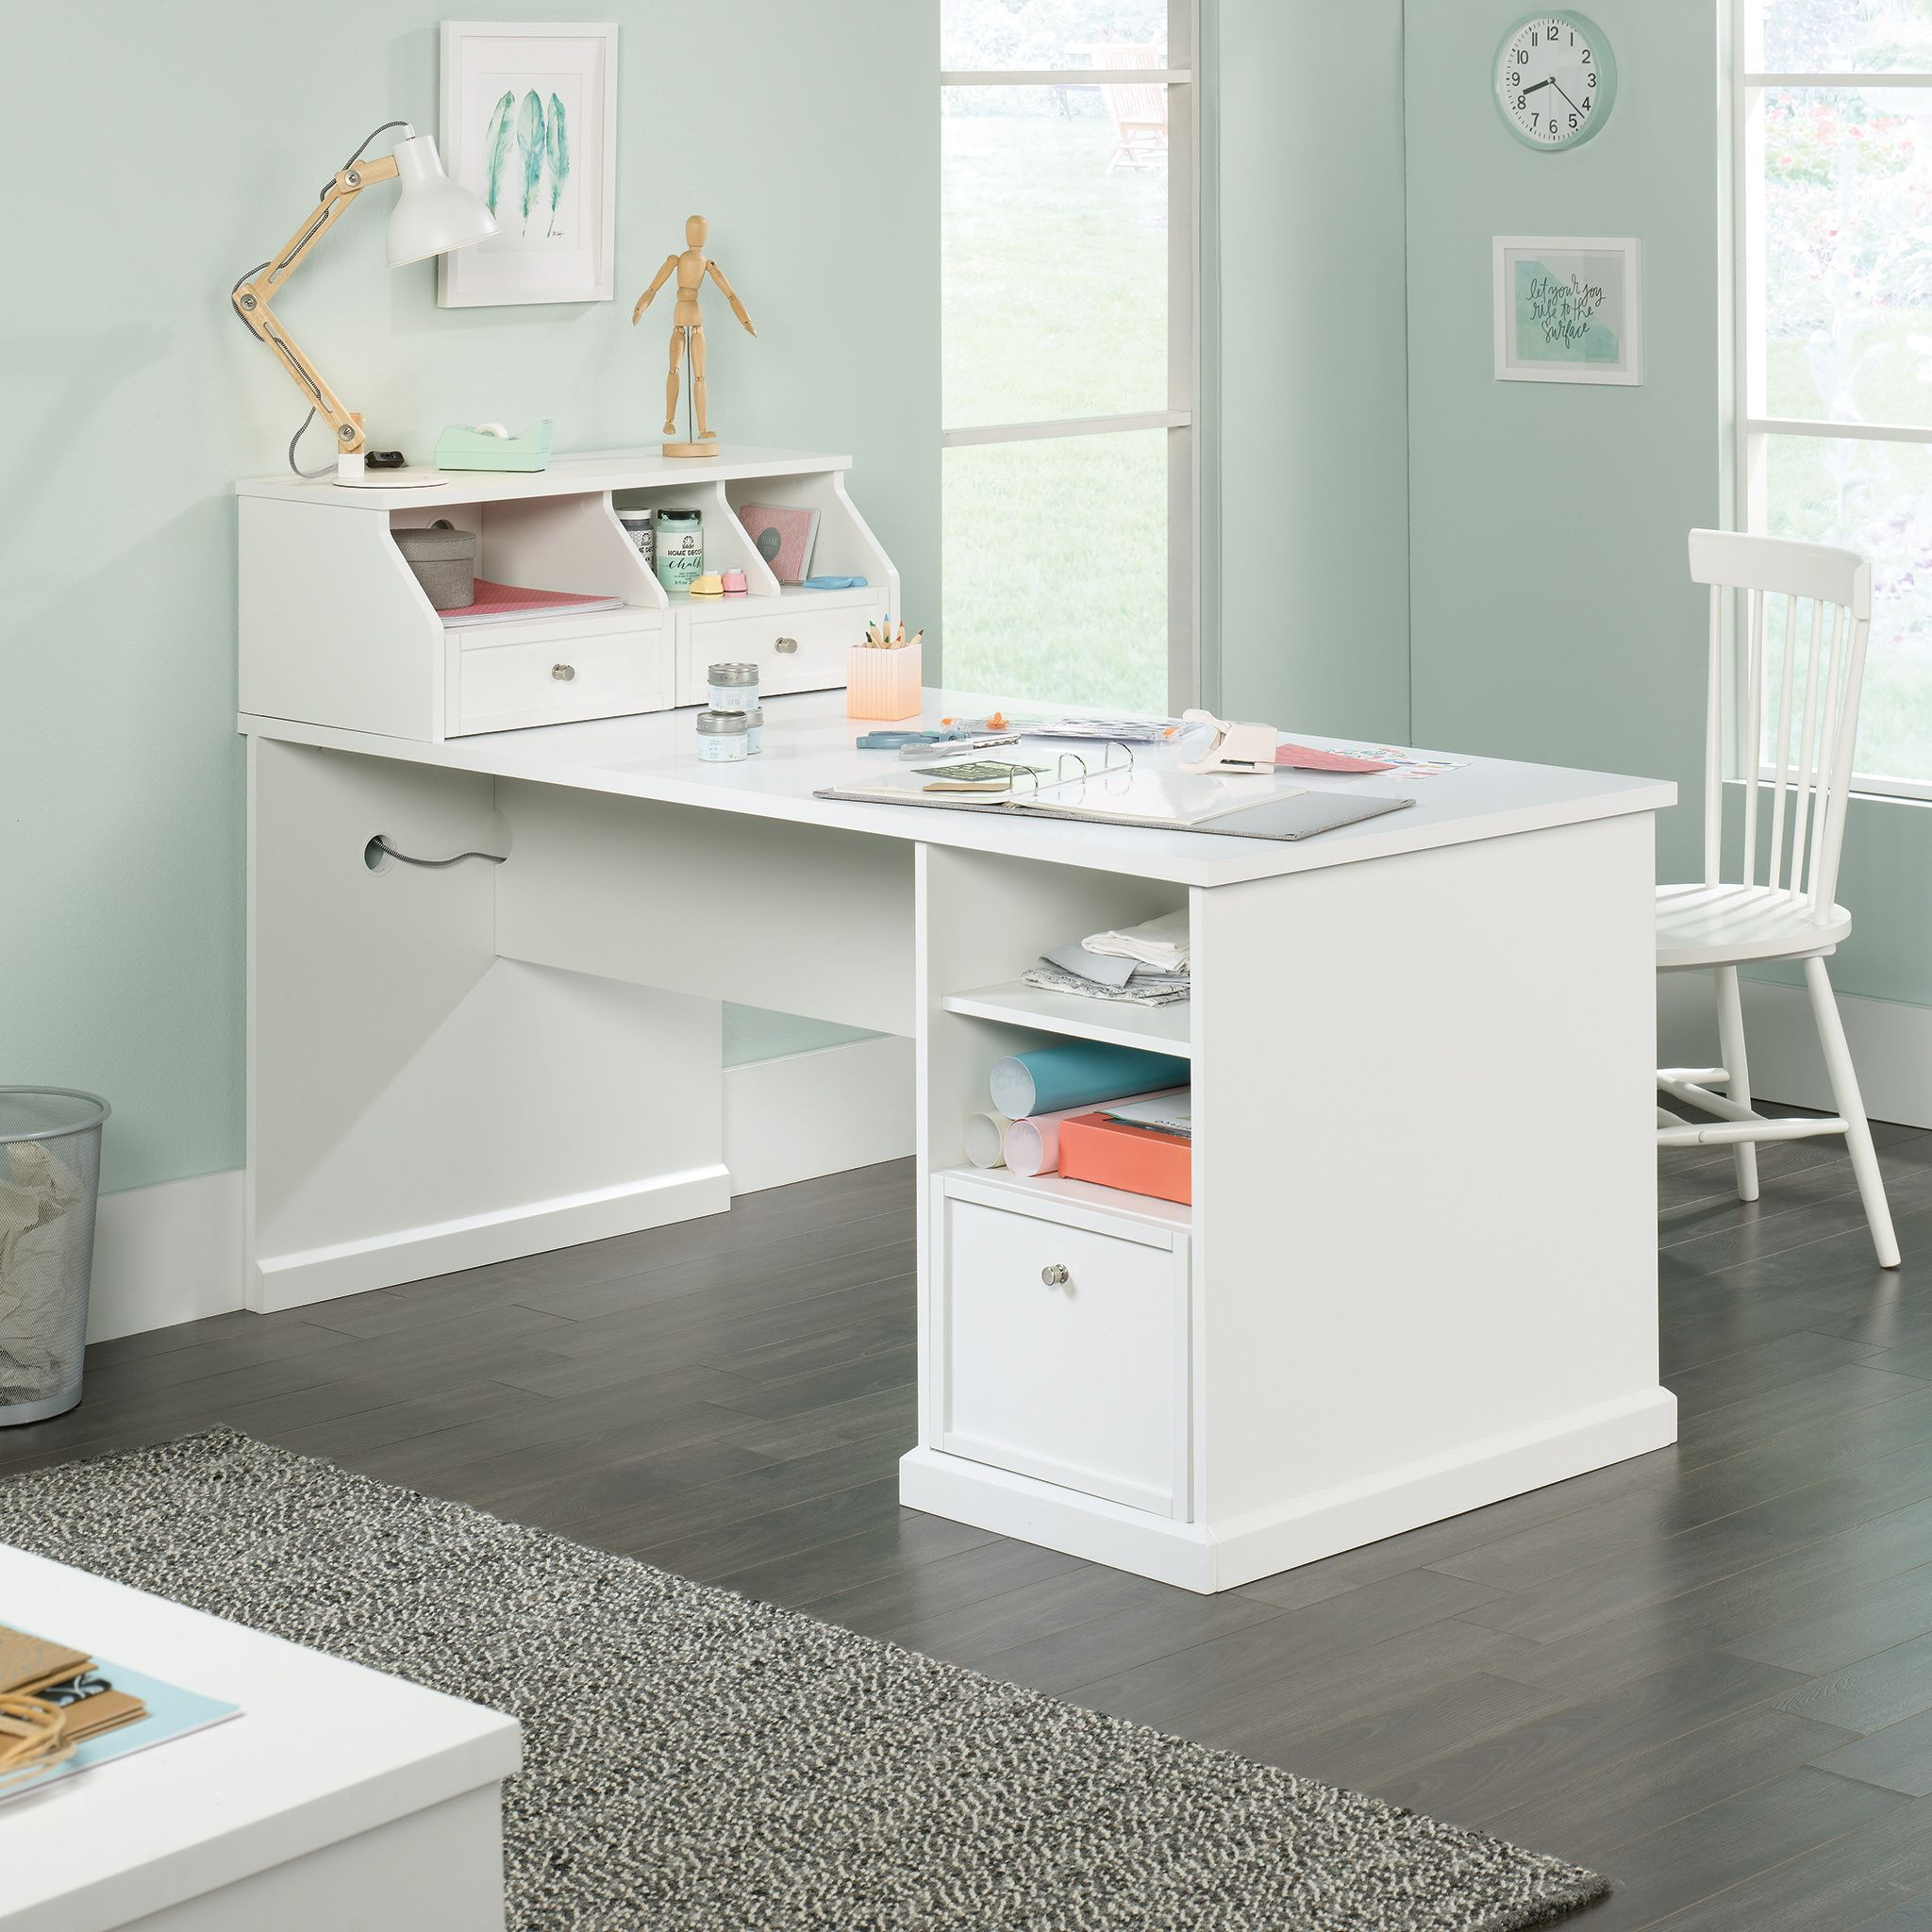 Craftsfortoddlerboys Craft Tables With Storage Craft Table Craft Room Office